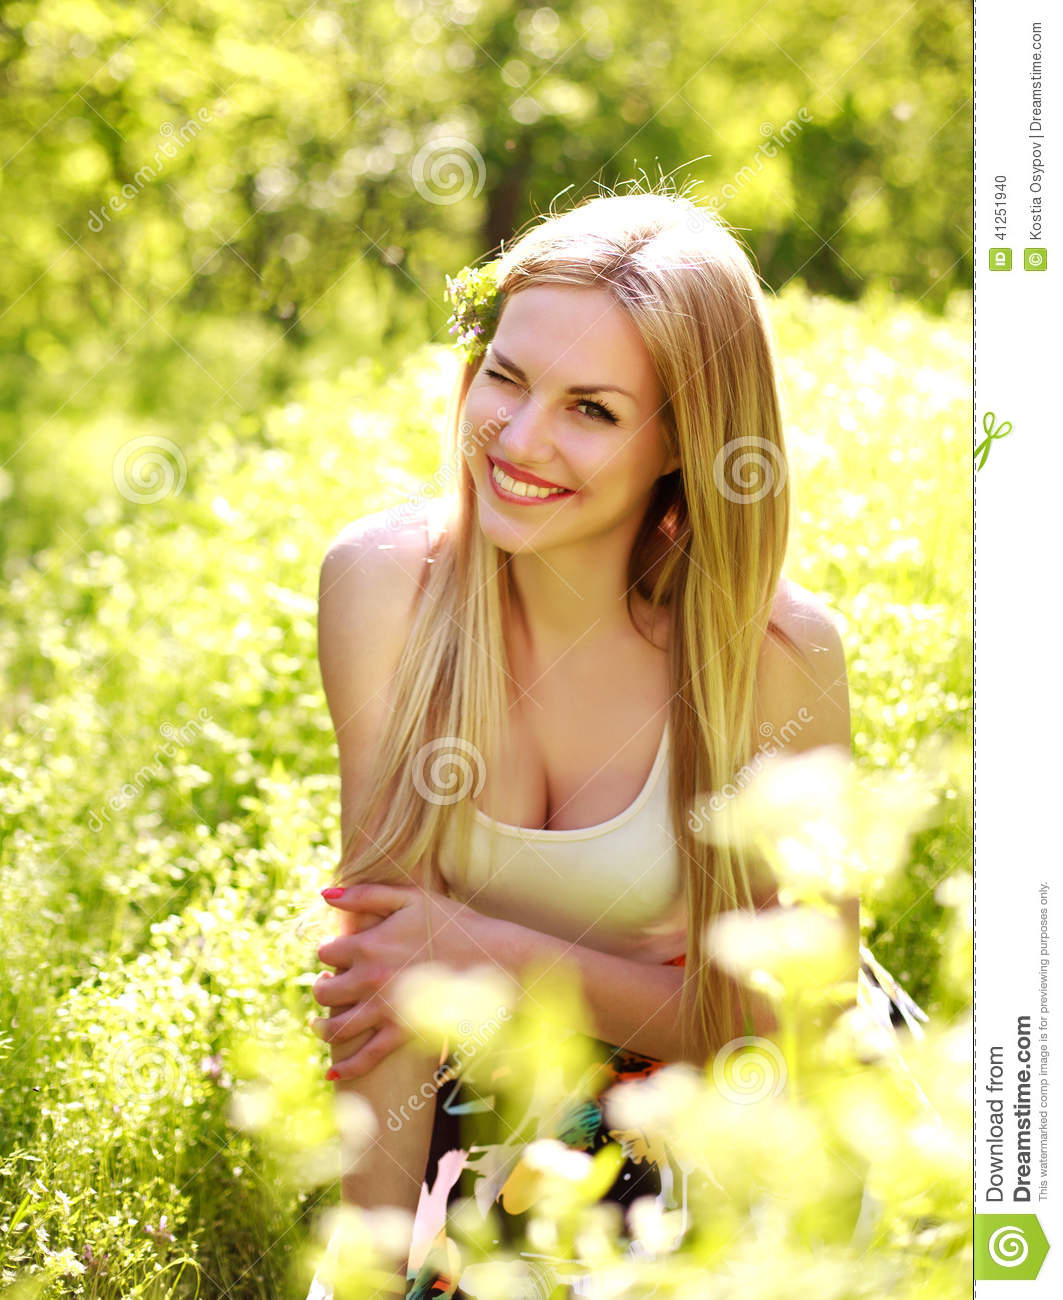 Sensual young woman, smiles sweetly in the flowered garden